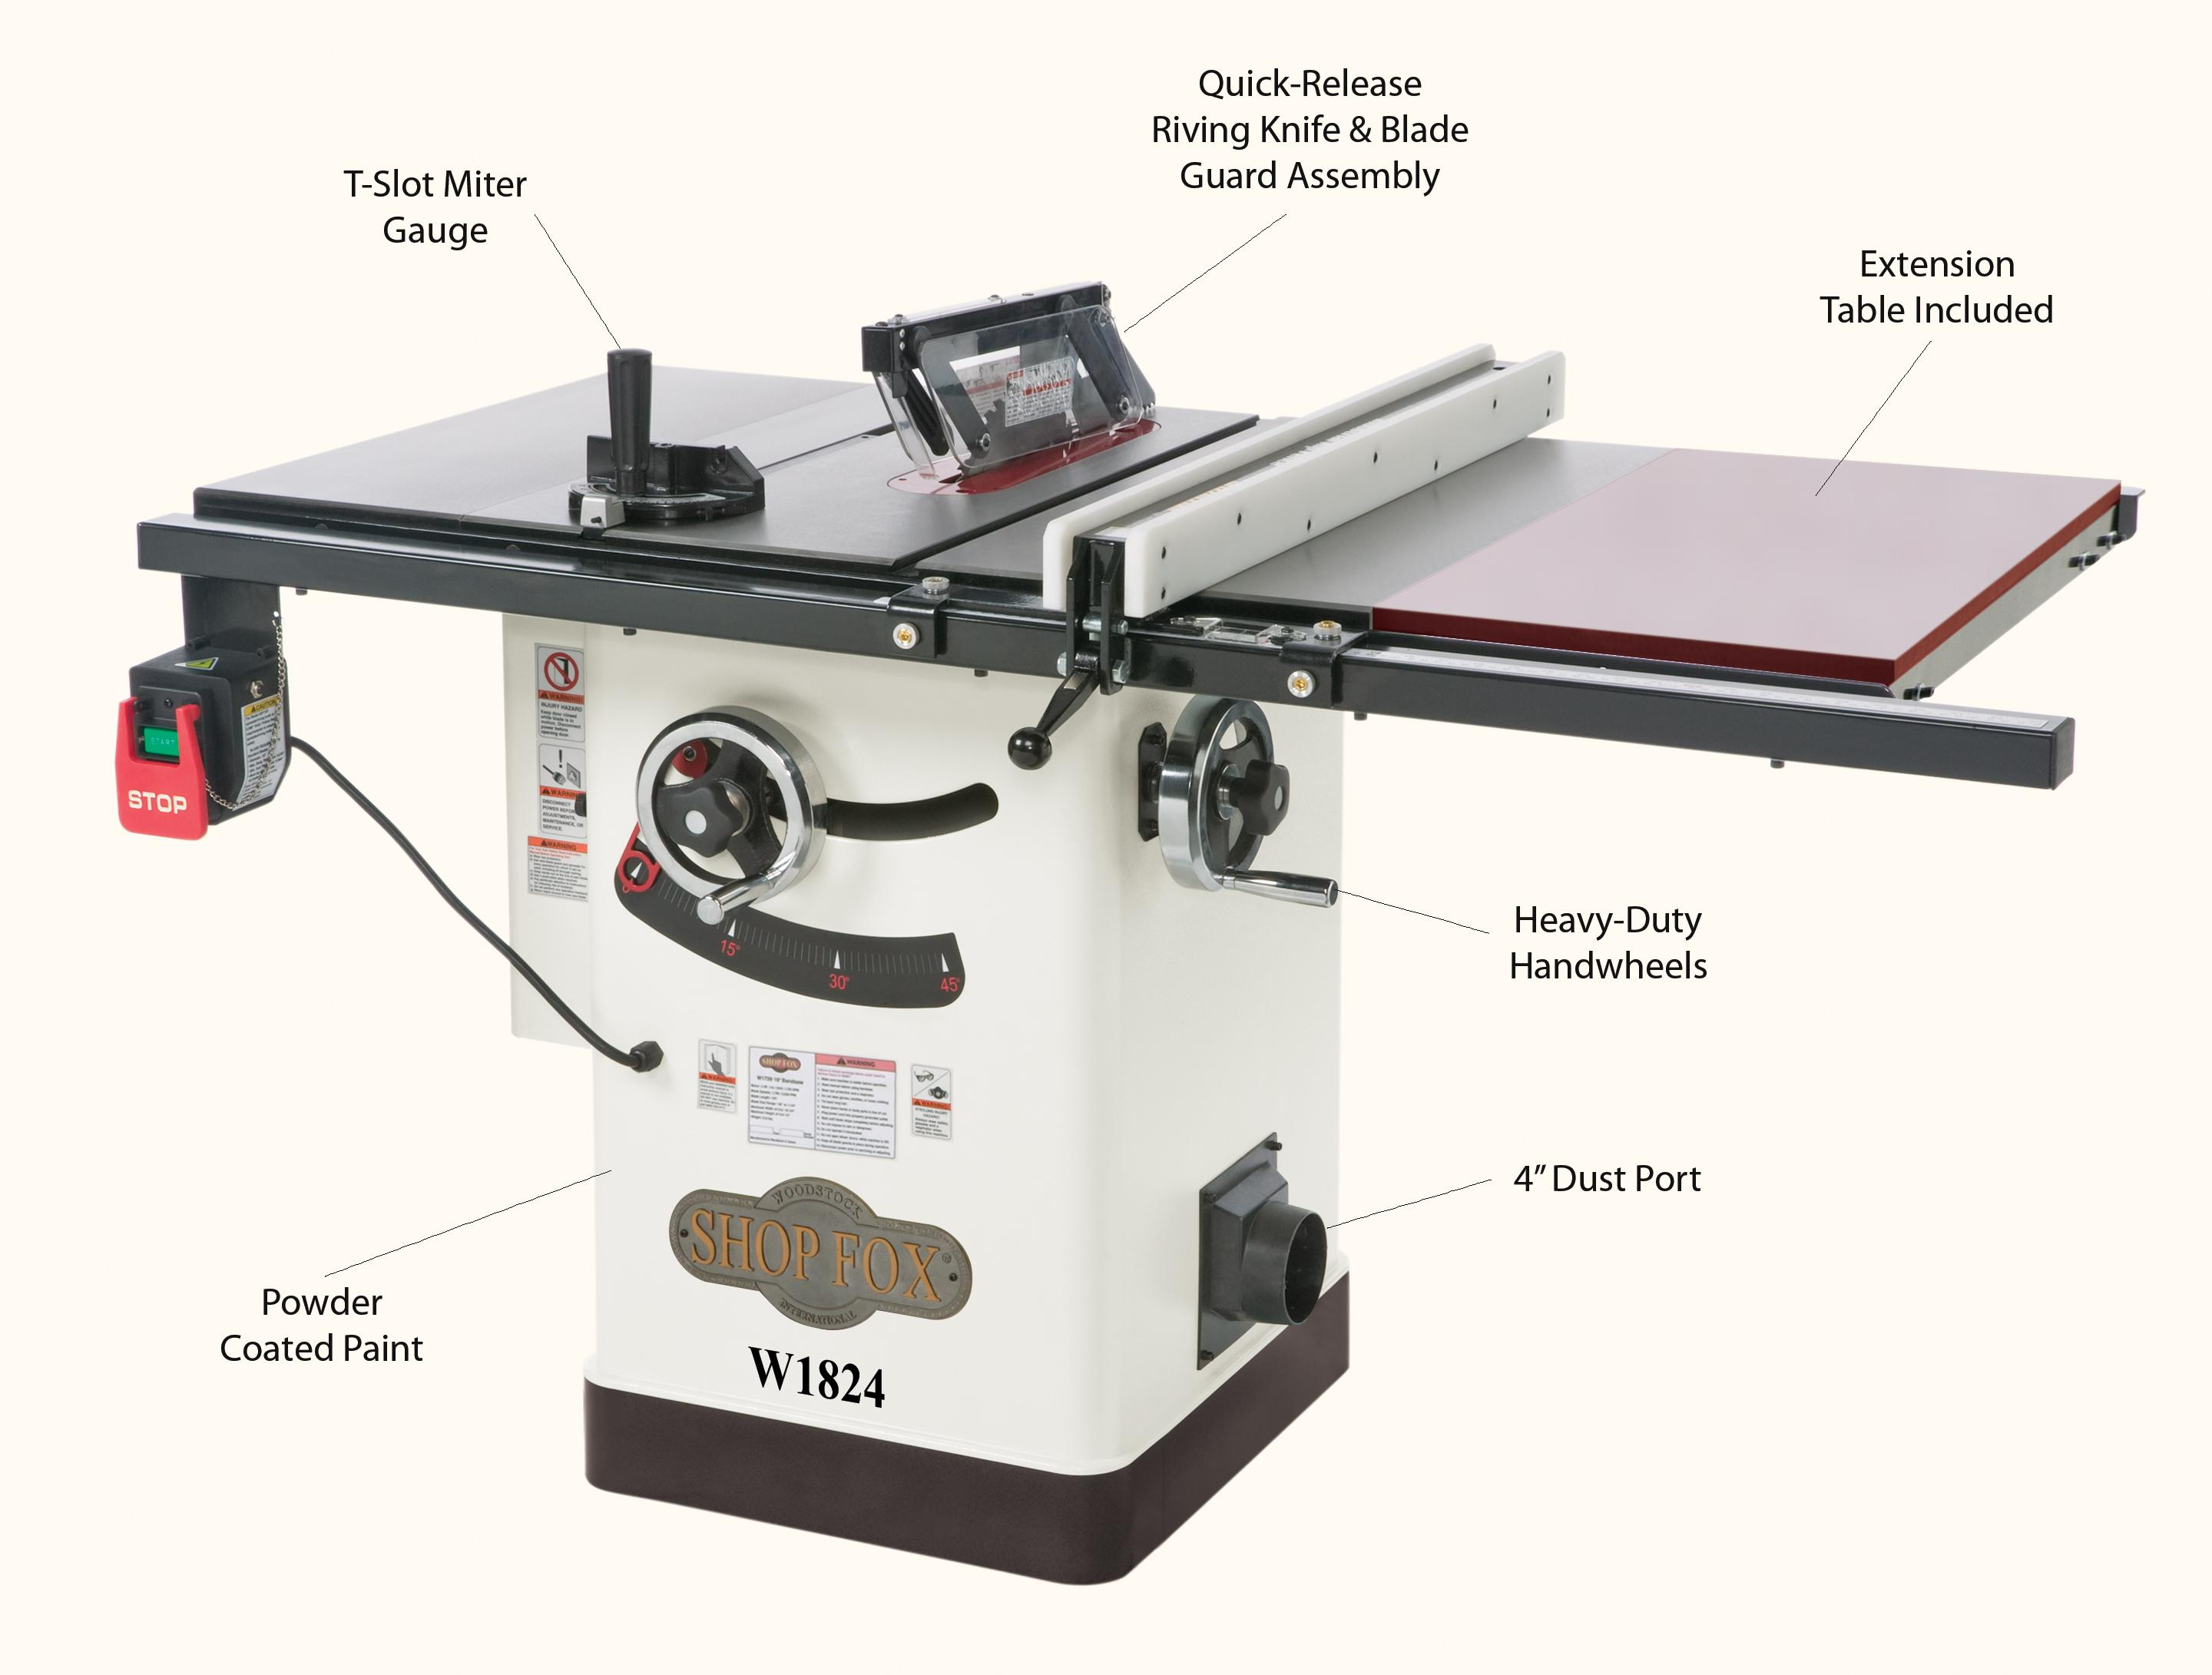 Shop fox w1824 hybrid table saw with extension table power table view larger greentooth